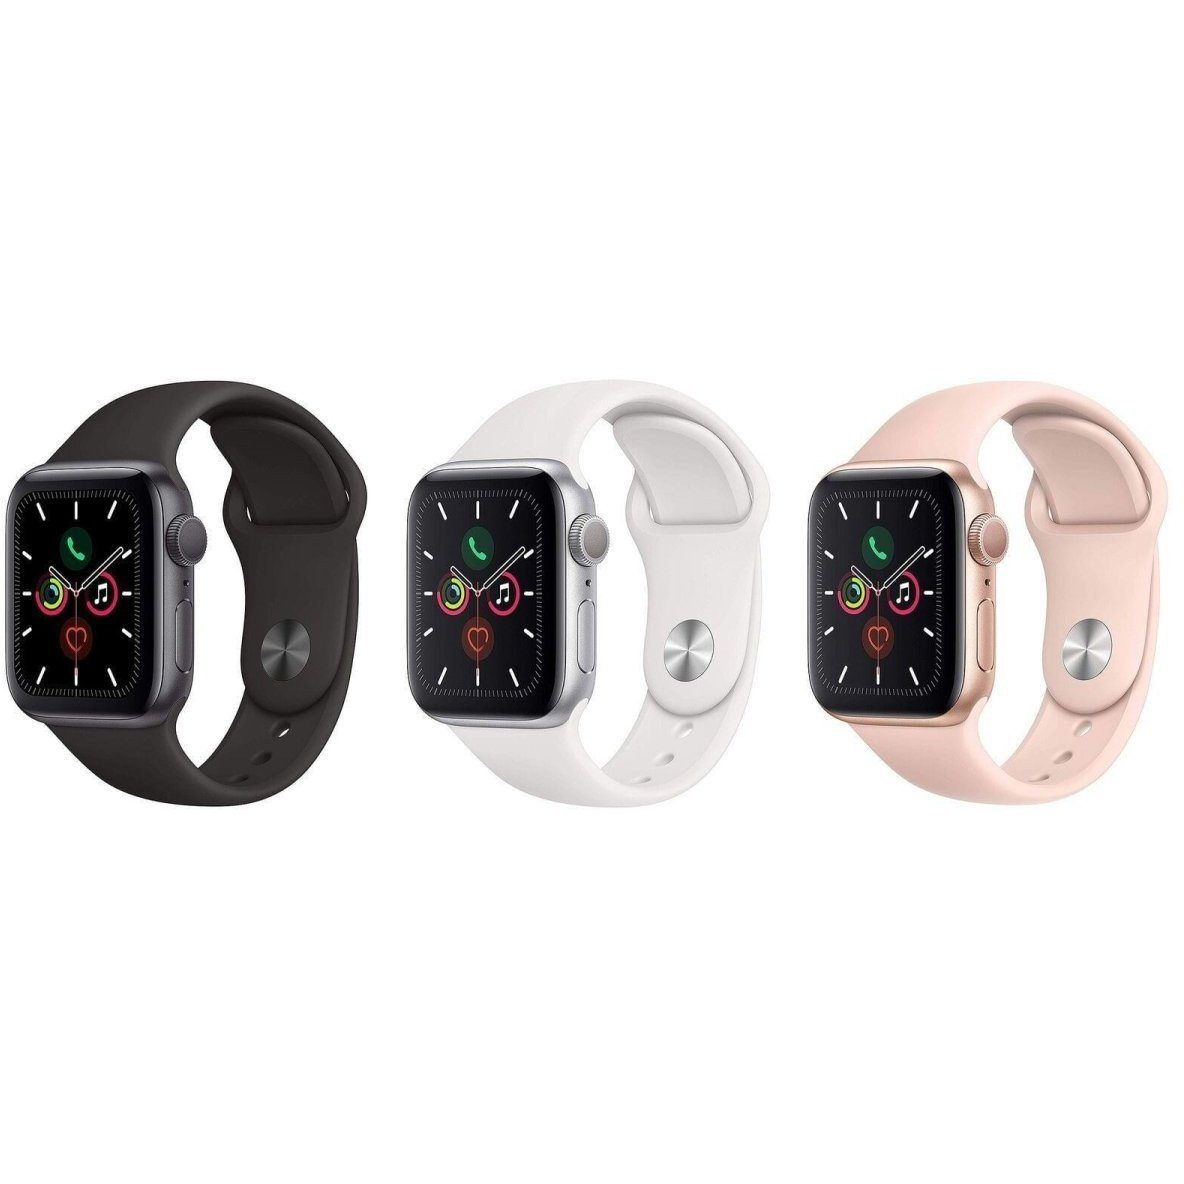 Apple Watch Series 4 GPS Only 40mm Smartwatch - Fix Or Cell Now Device Shop